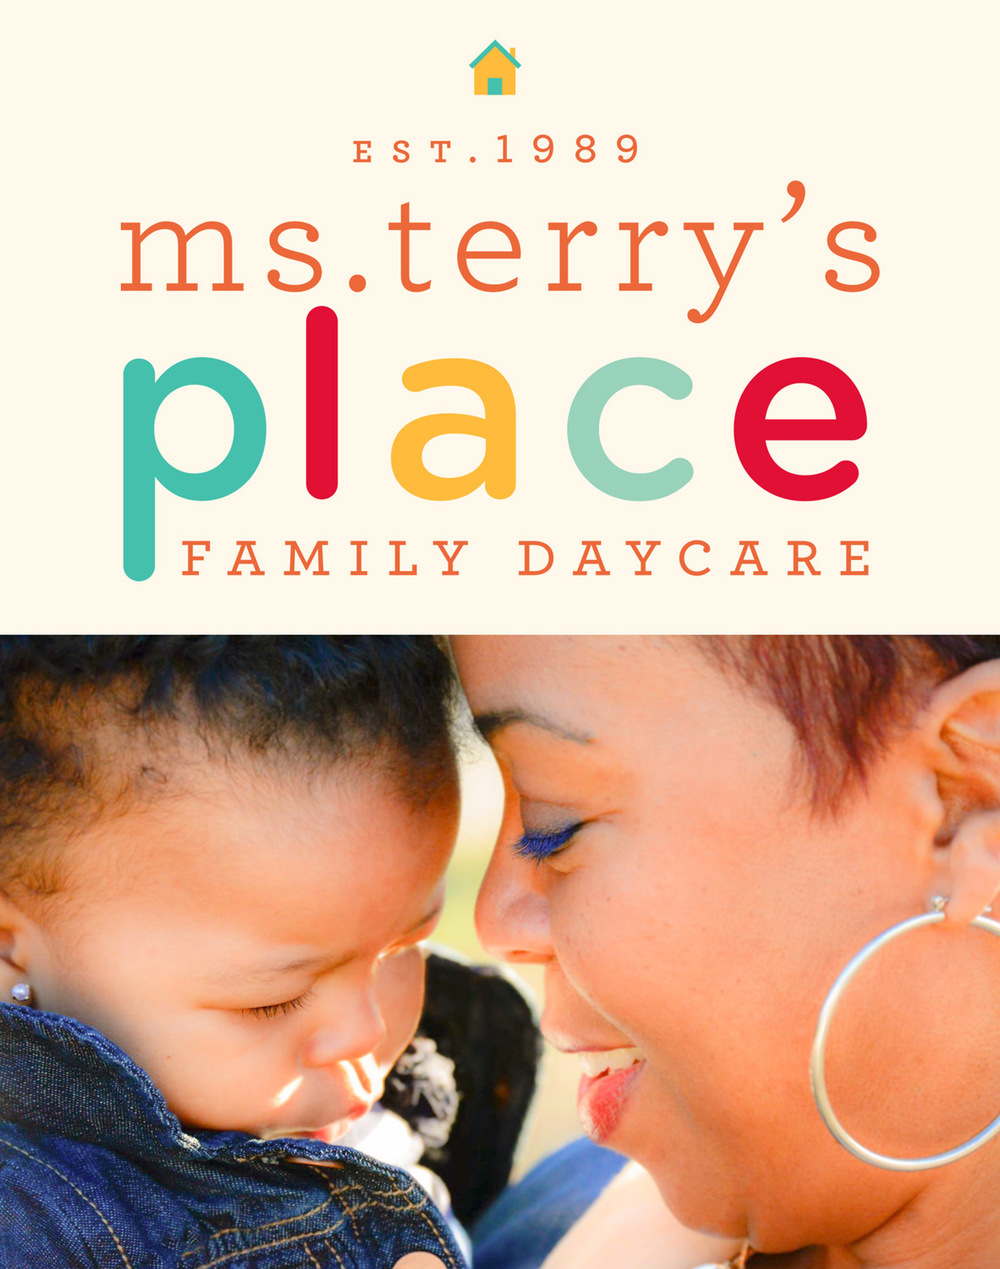 Client: Ms.Terry's Family Daycare Fields: Art Direction, Branding, Logo Design, Graphic Design, Illustration